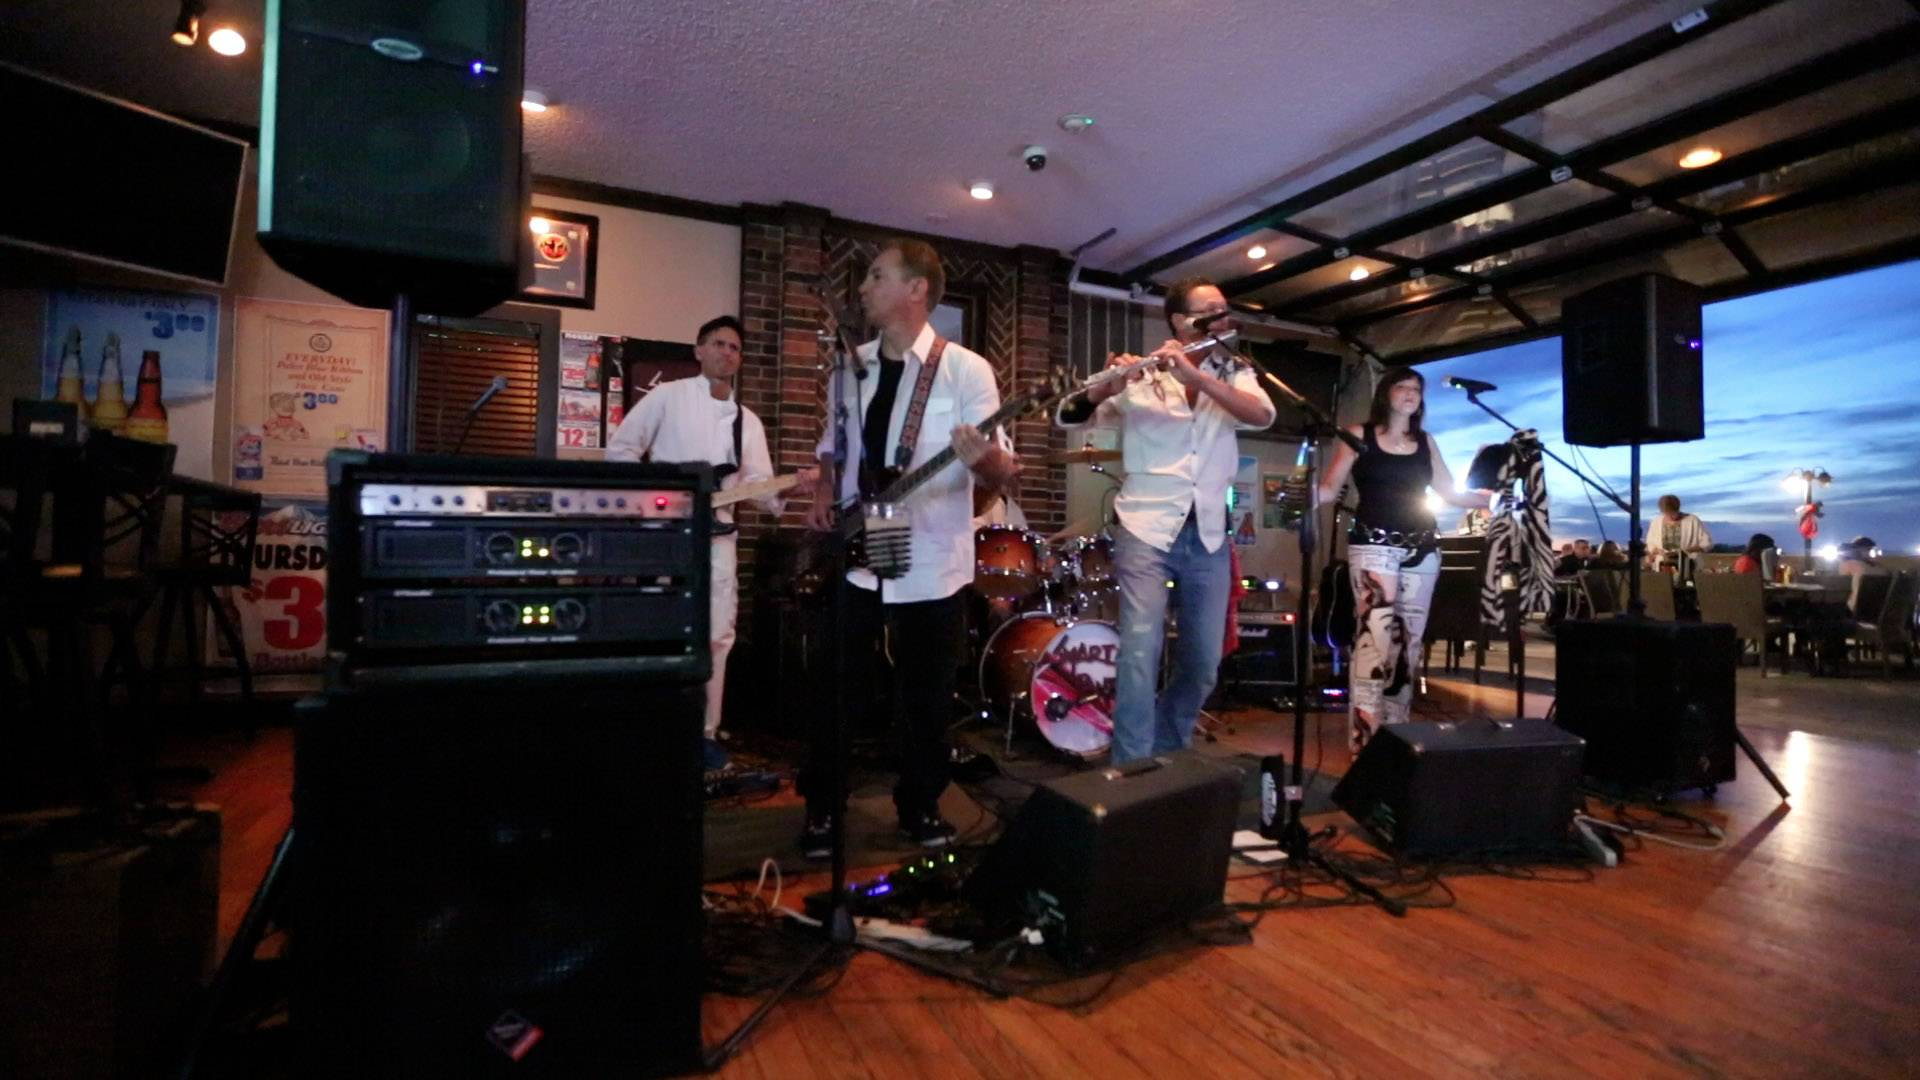 Kildeer-based band Smarty Pants -- with Steve Gezeler, left, playing lead guitar, Robert Touella playing bass, Mario Losacco on drums, Steve Dee playing the flute, and Anne Christy, lead singer -- plays at the Docks Bar and Grill in Wauconda.